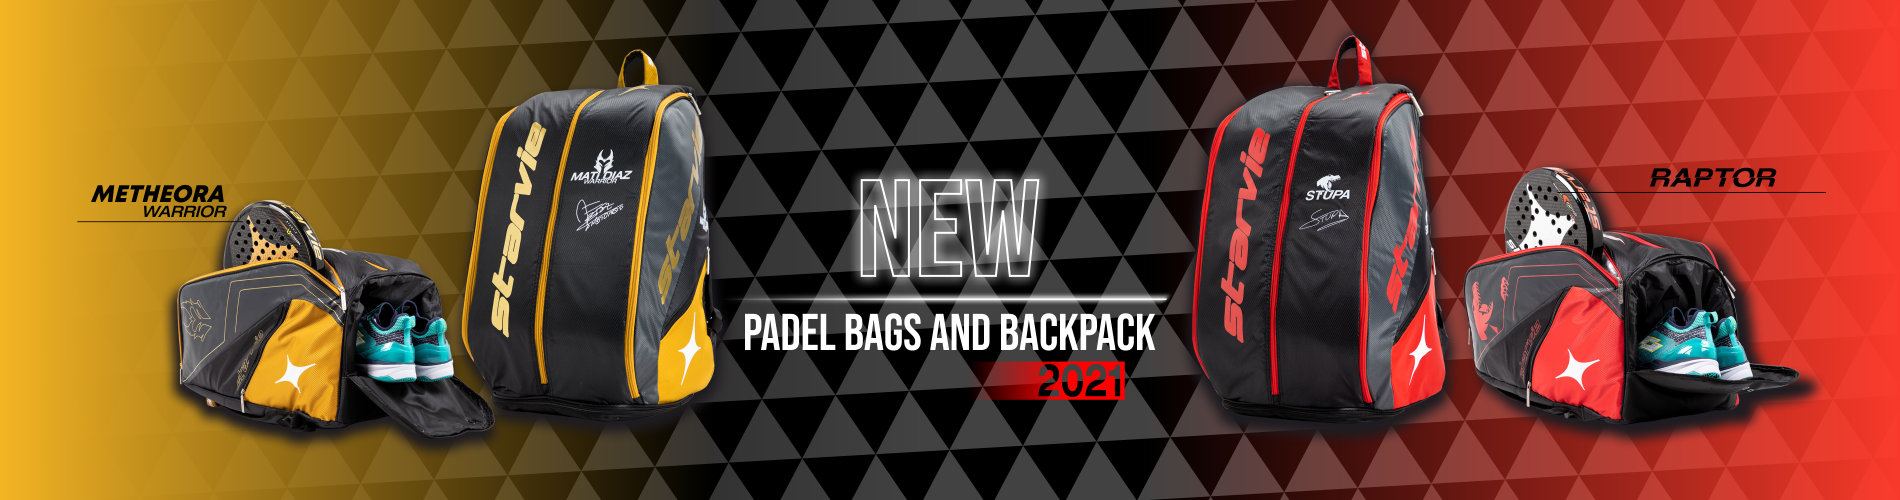 Padel Bags and Backpacks Collection StarVie